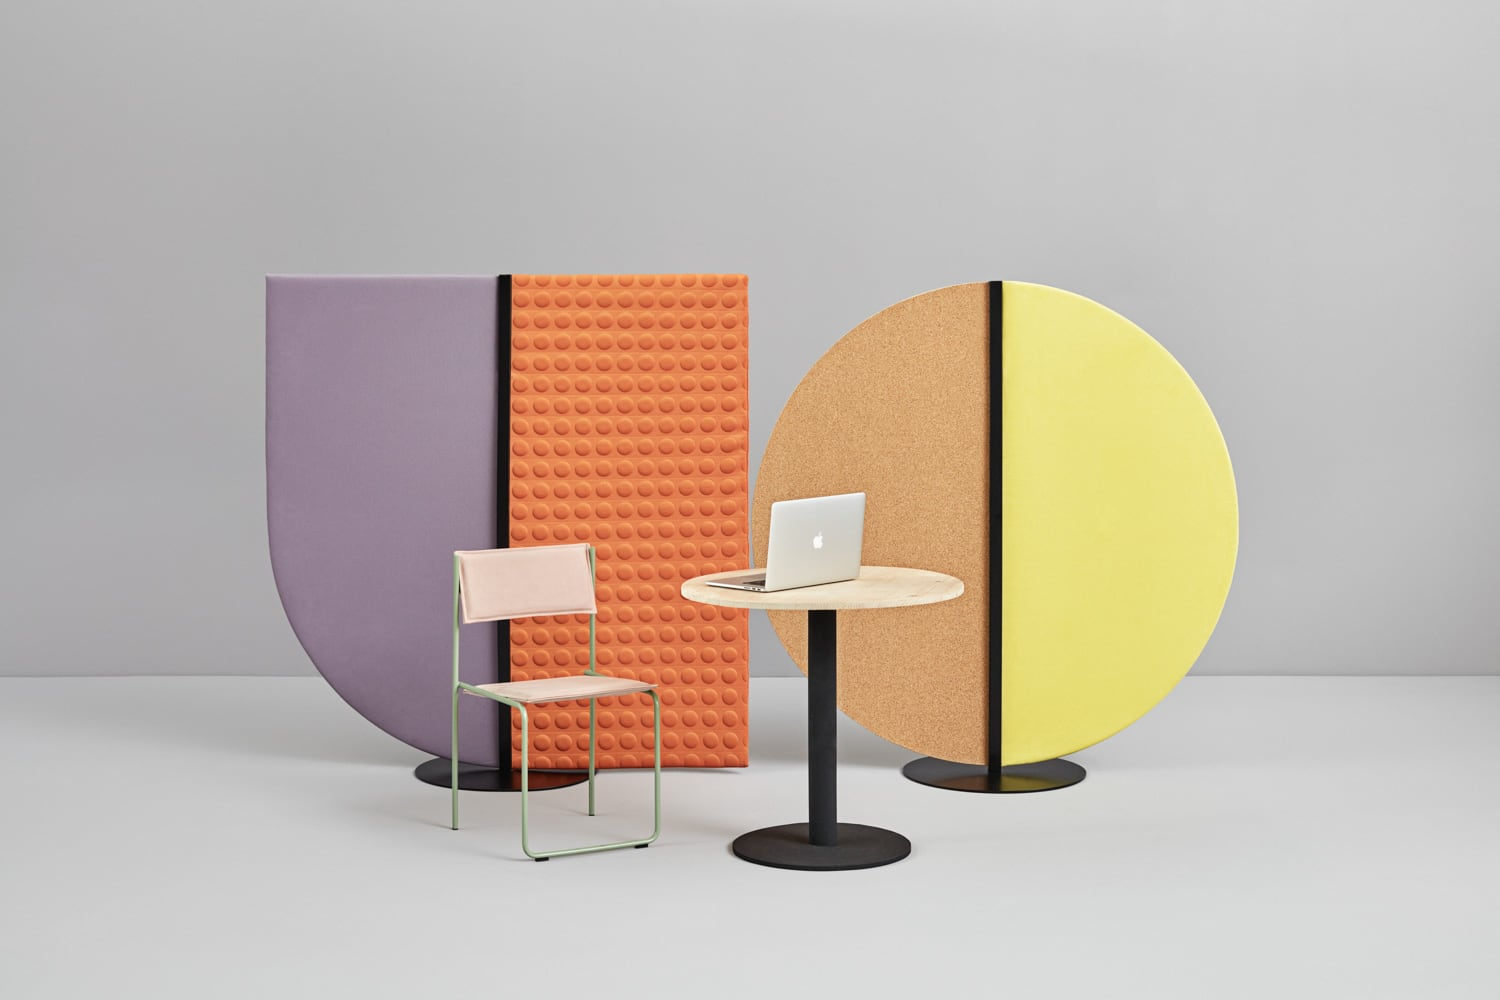 pause-acoustic-panels-work-spaces-interior-2-design